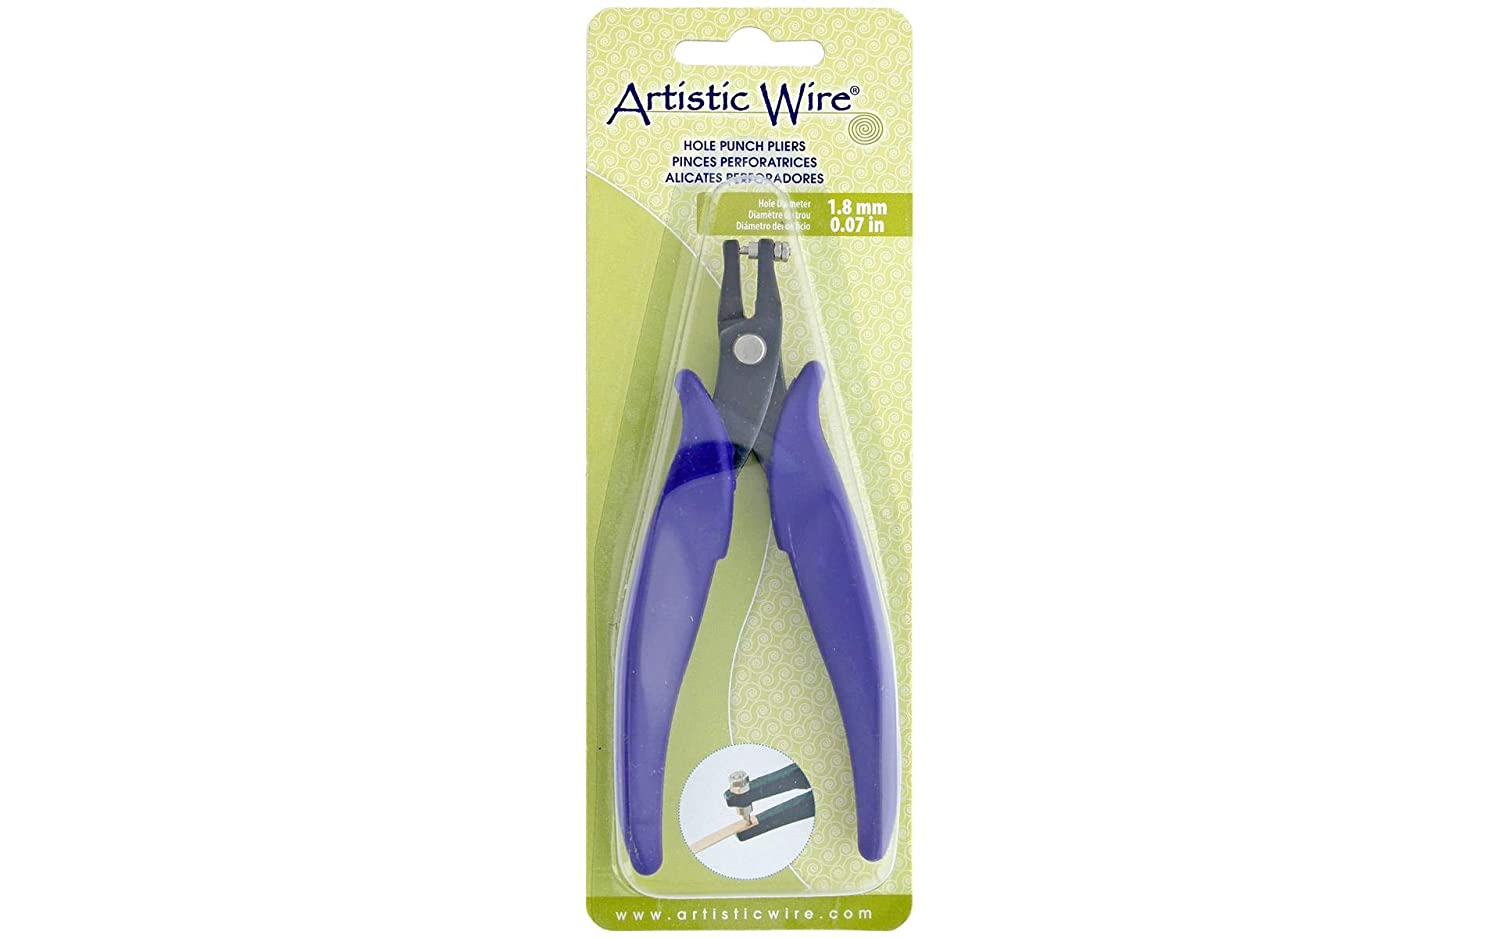 Amazon.com: Artistic Wire 205S-010 Hole Punch Pliers